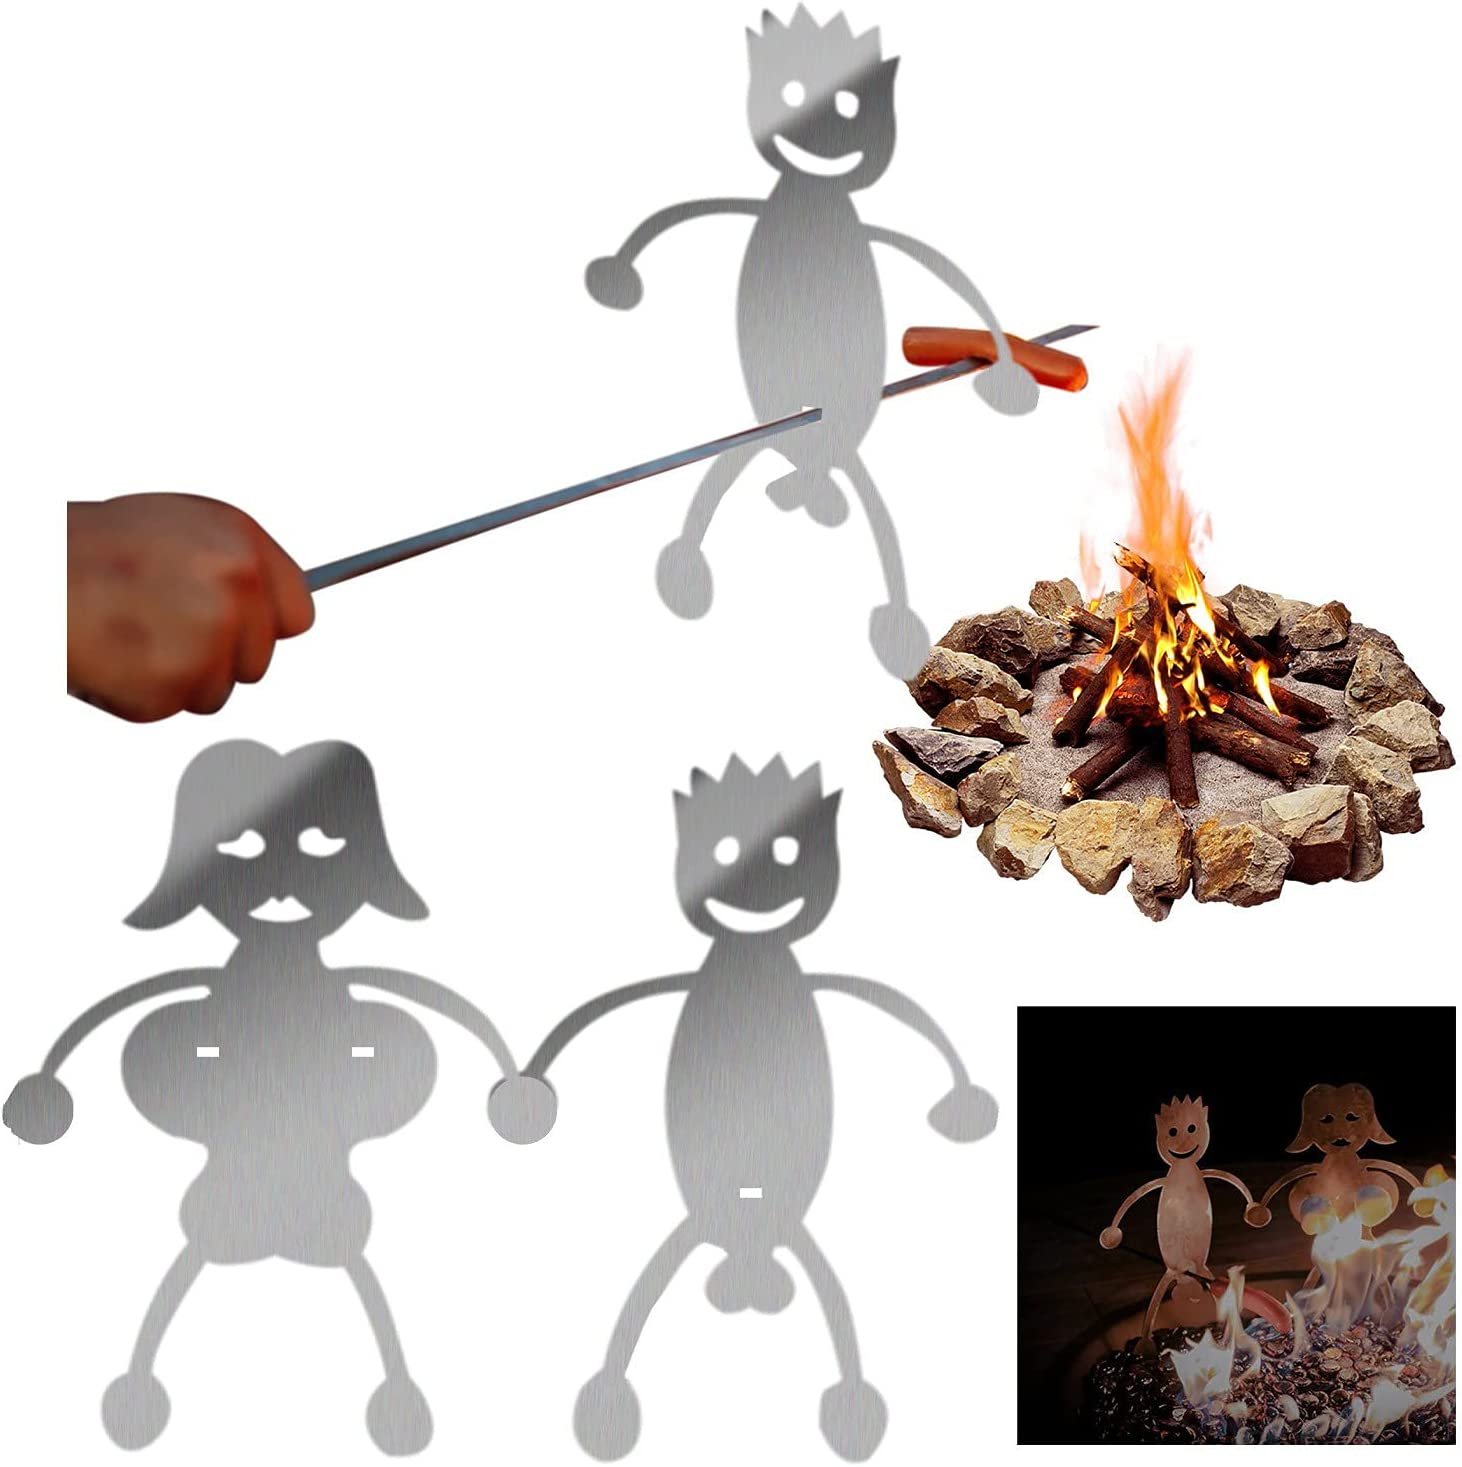 MAITING Steel Hot Dog/Marshmallow Roasters, Novelty Women Men Shaped Stainless Steel Camp Fire Roasting Stick, Funny Metal Craft Skewer Stick(Marshmallow Girl + Hot Dog Boy)